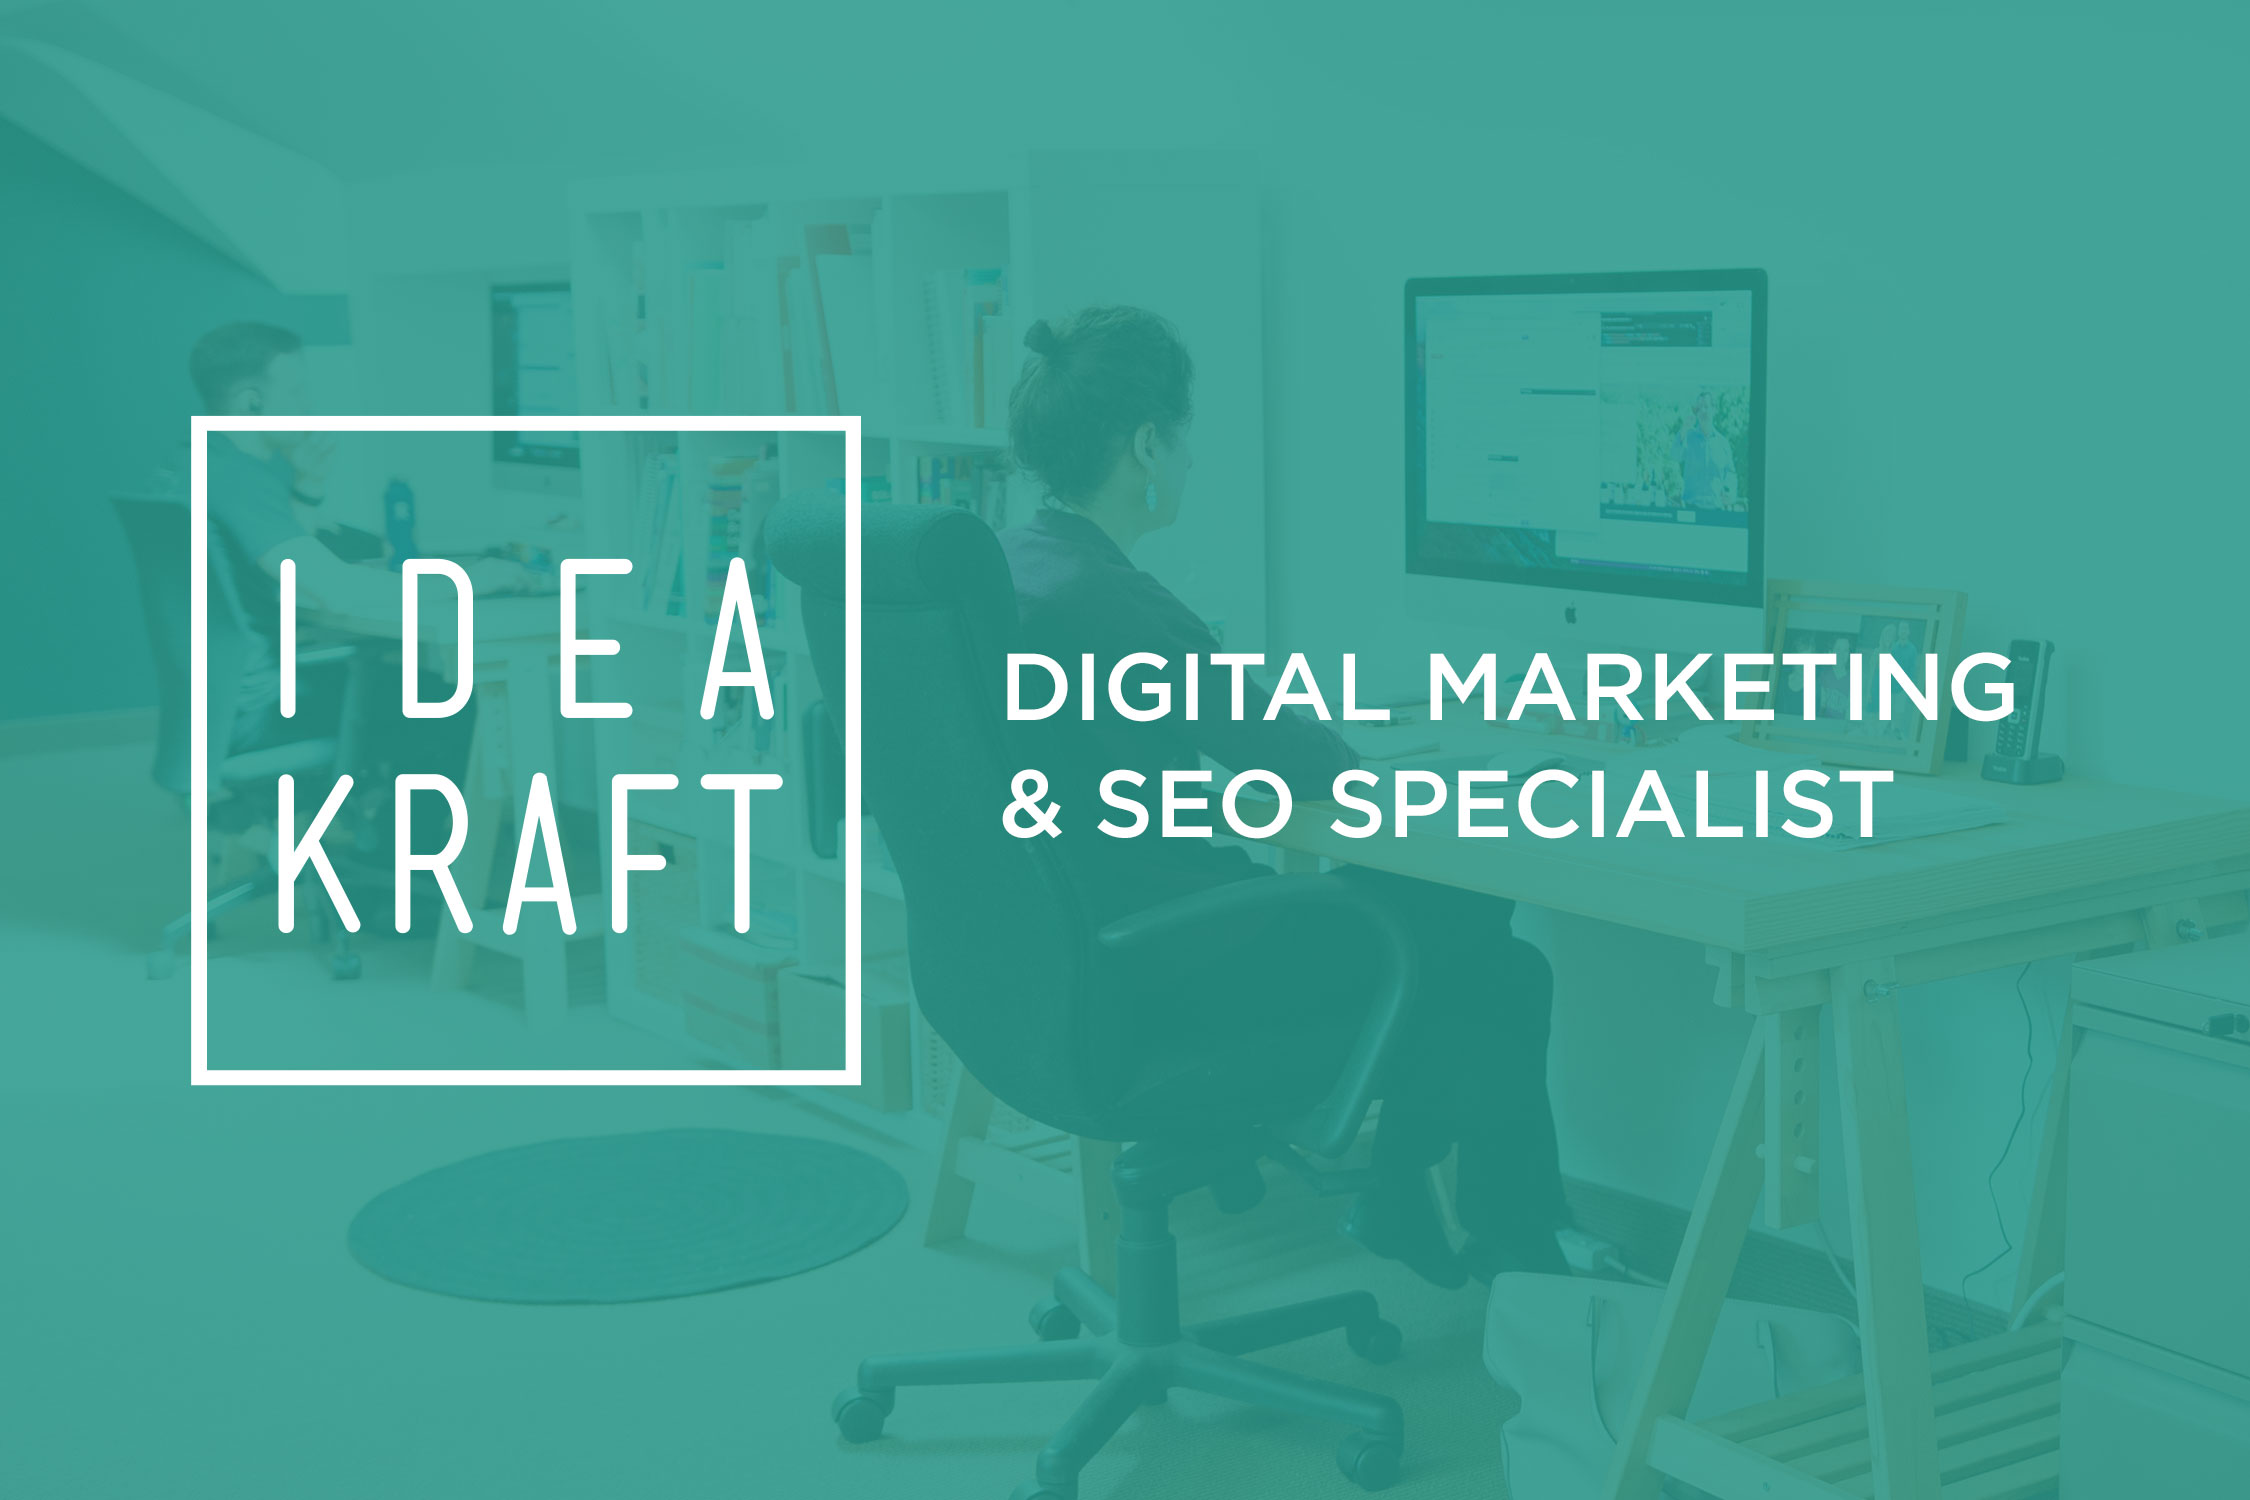 Digital Marketing & SEO Specialist